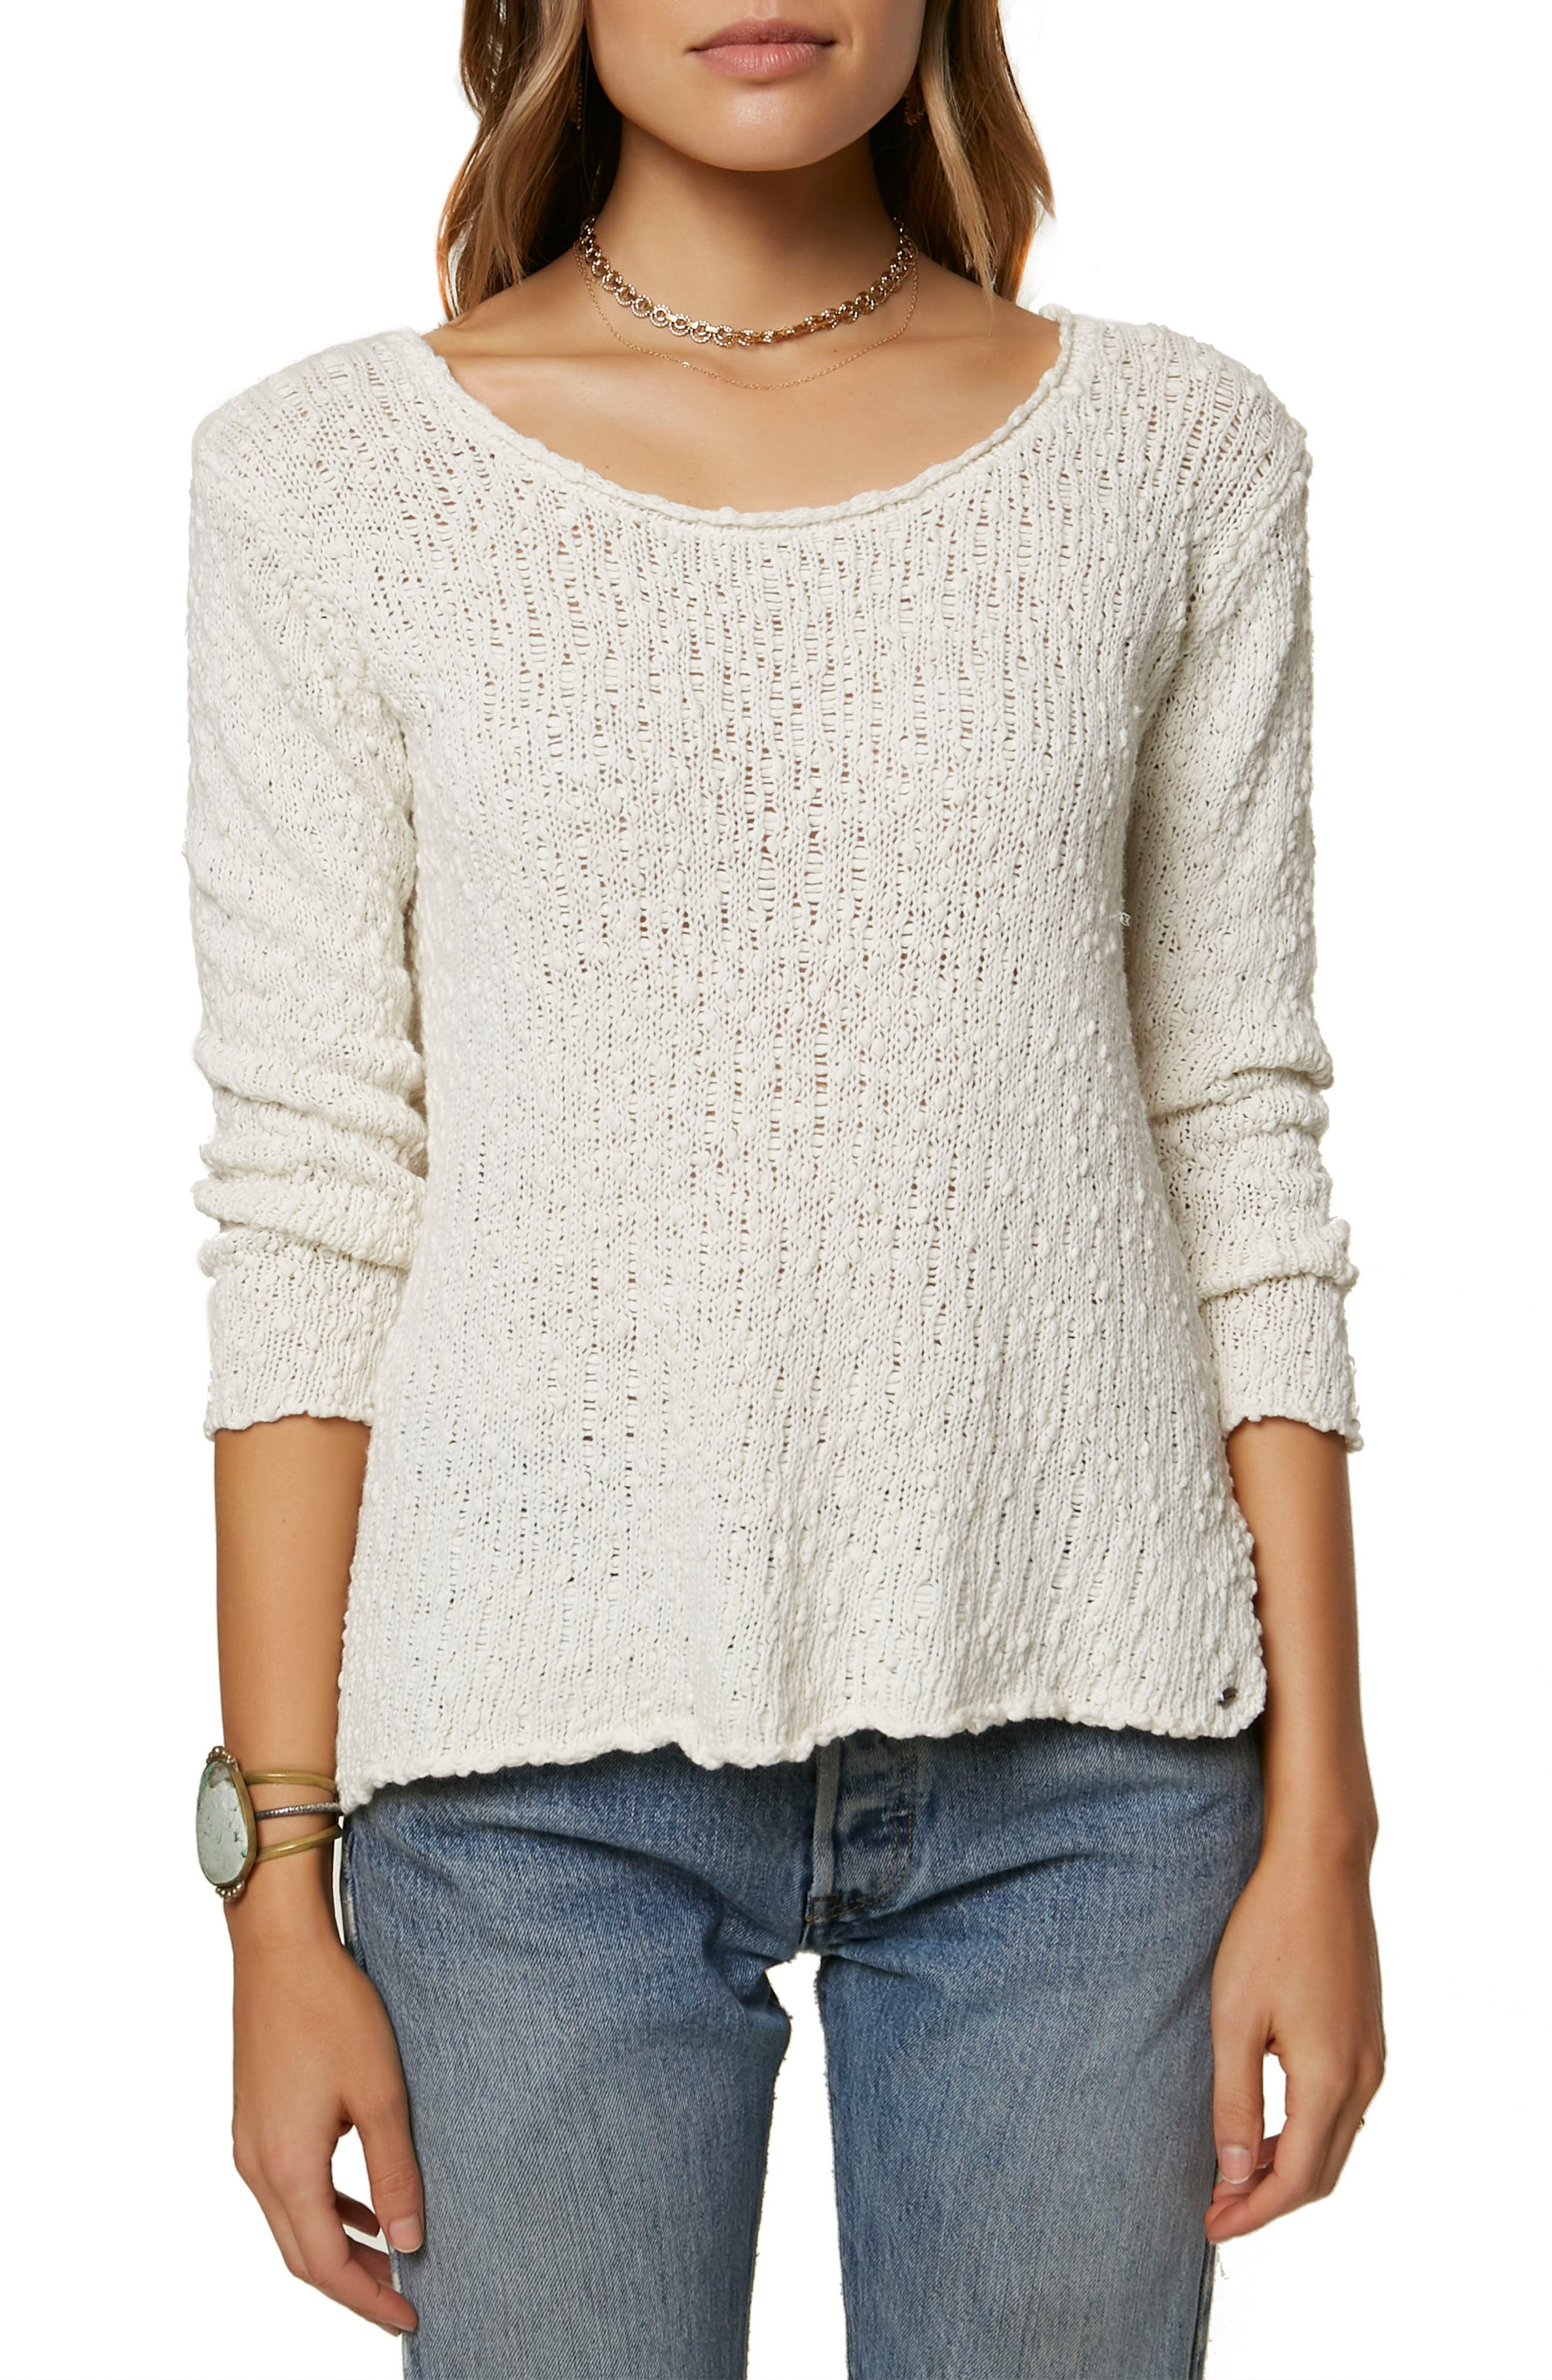 Rocha Pullover Sweater,                             Main thumbnail 1, color,                             100